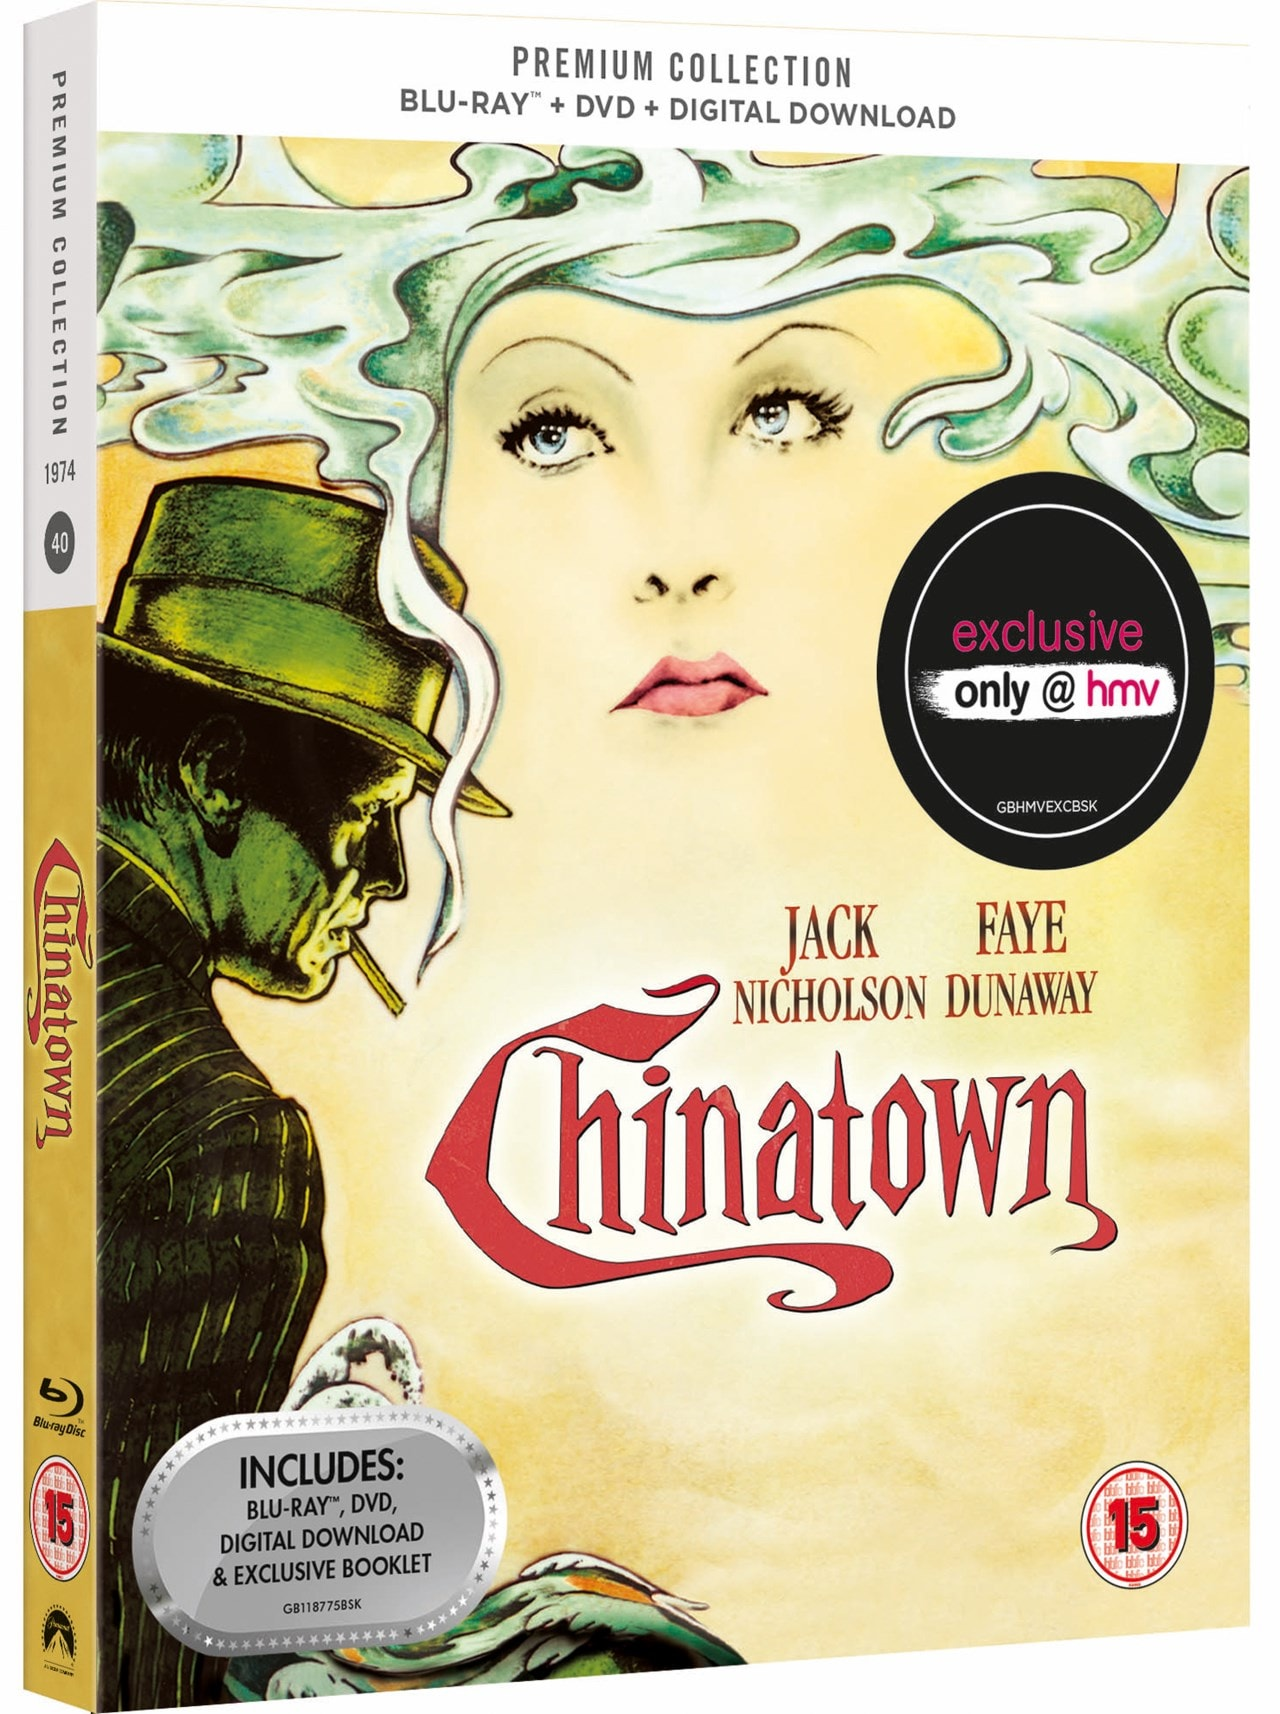 Chinatown (hmv Exclusive) - The Premium Collection - 2